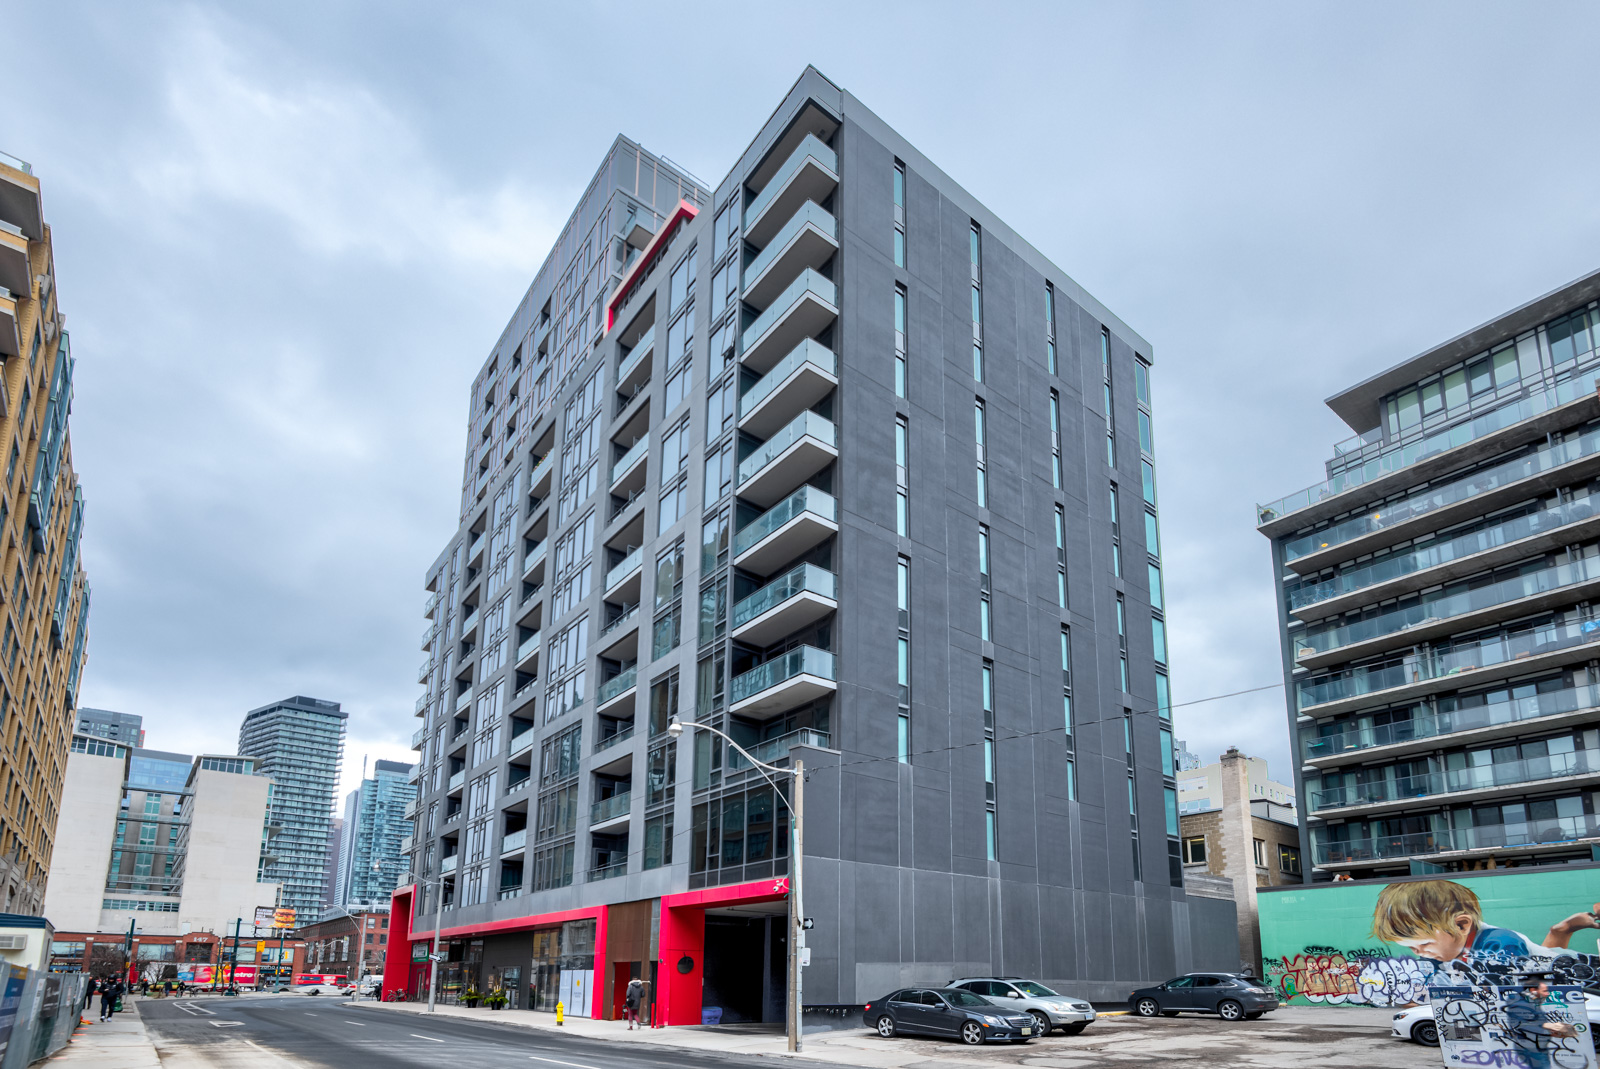 Street view of Fabrik Condos, a dark gray building with bright red accents on 435 Richmond St W PH 101.